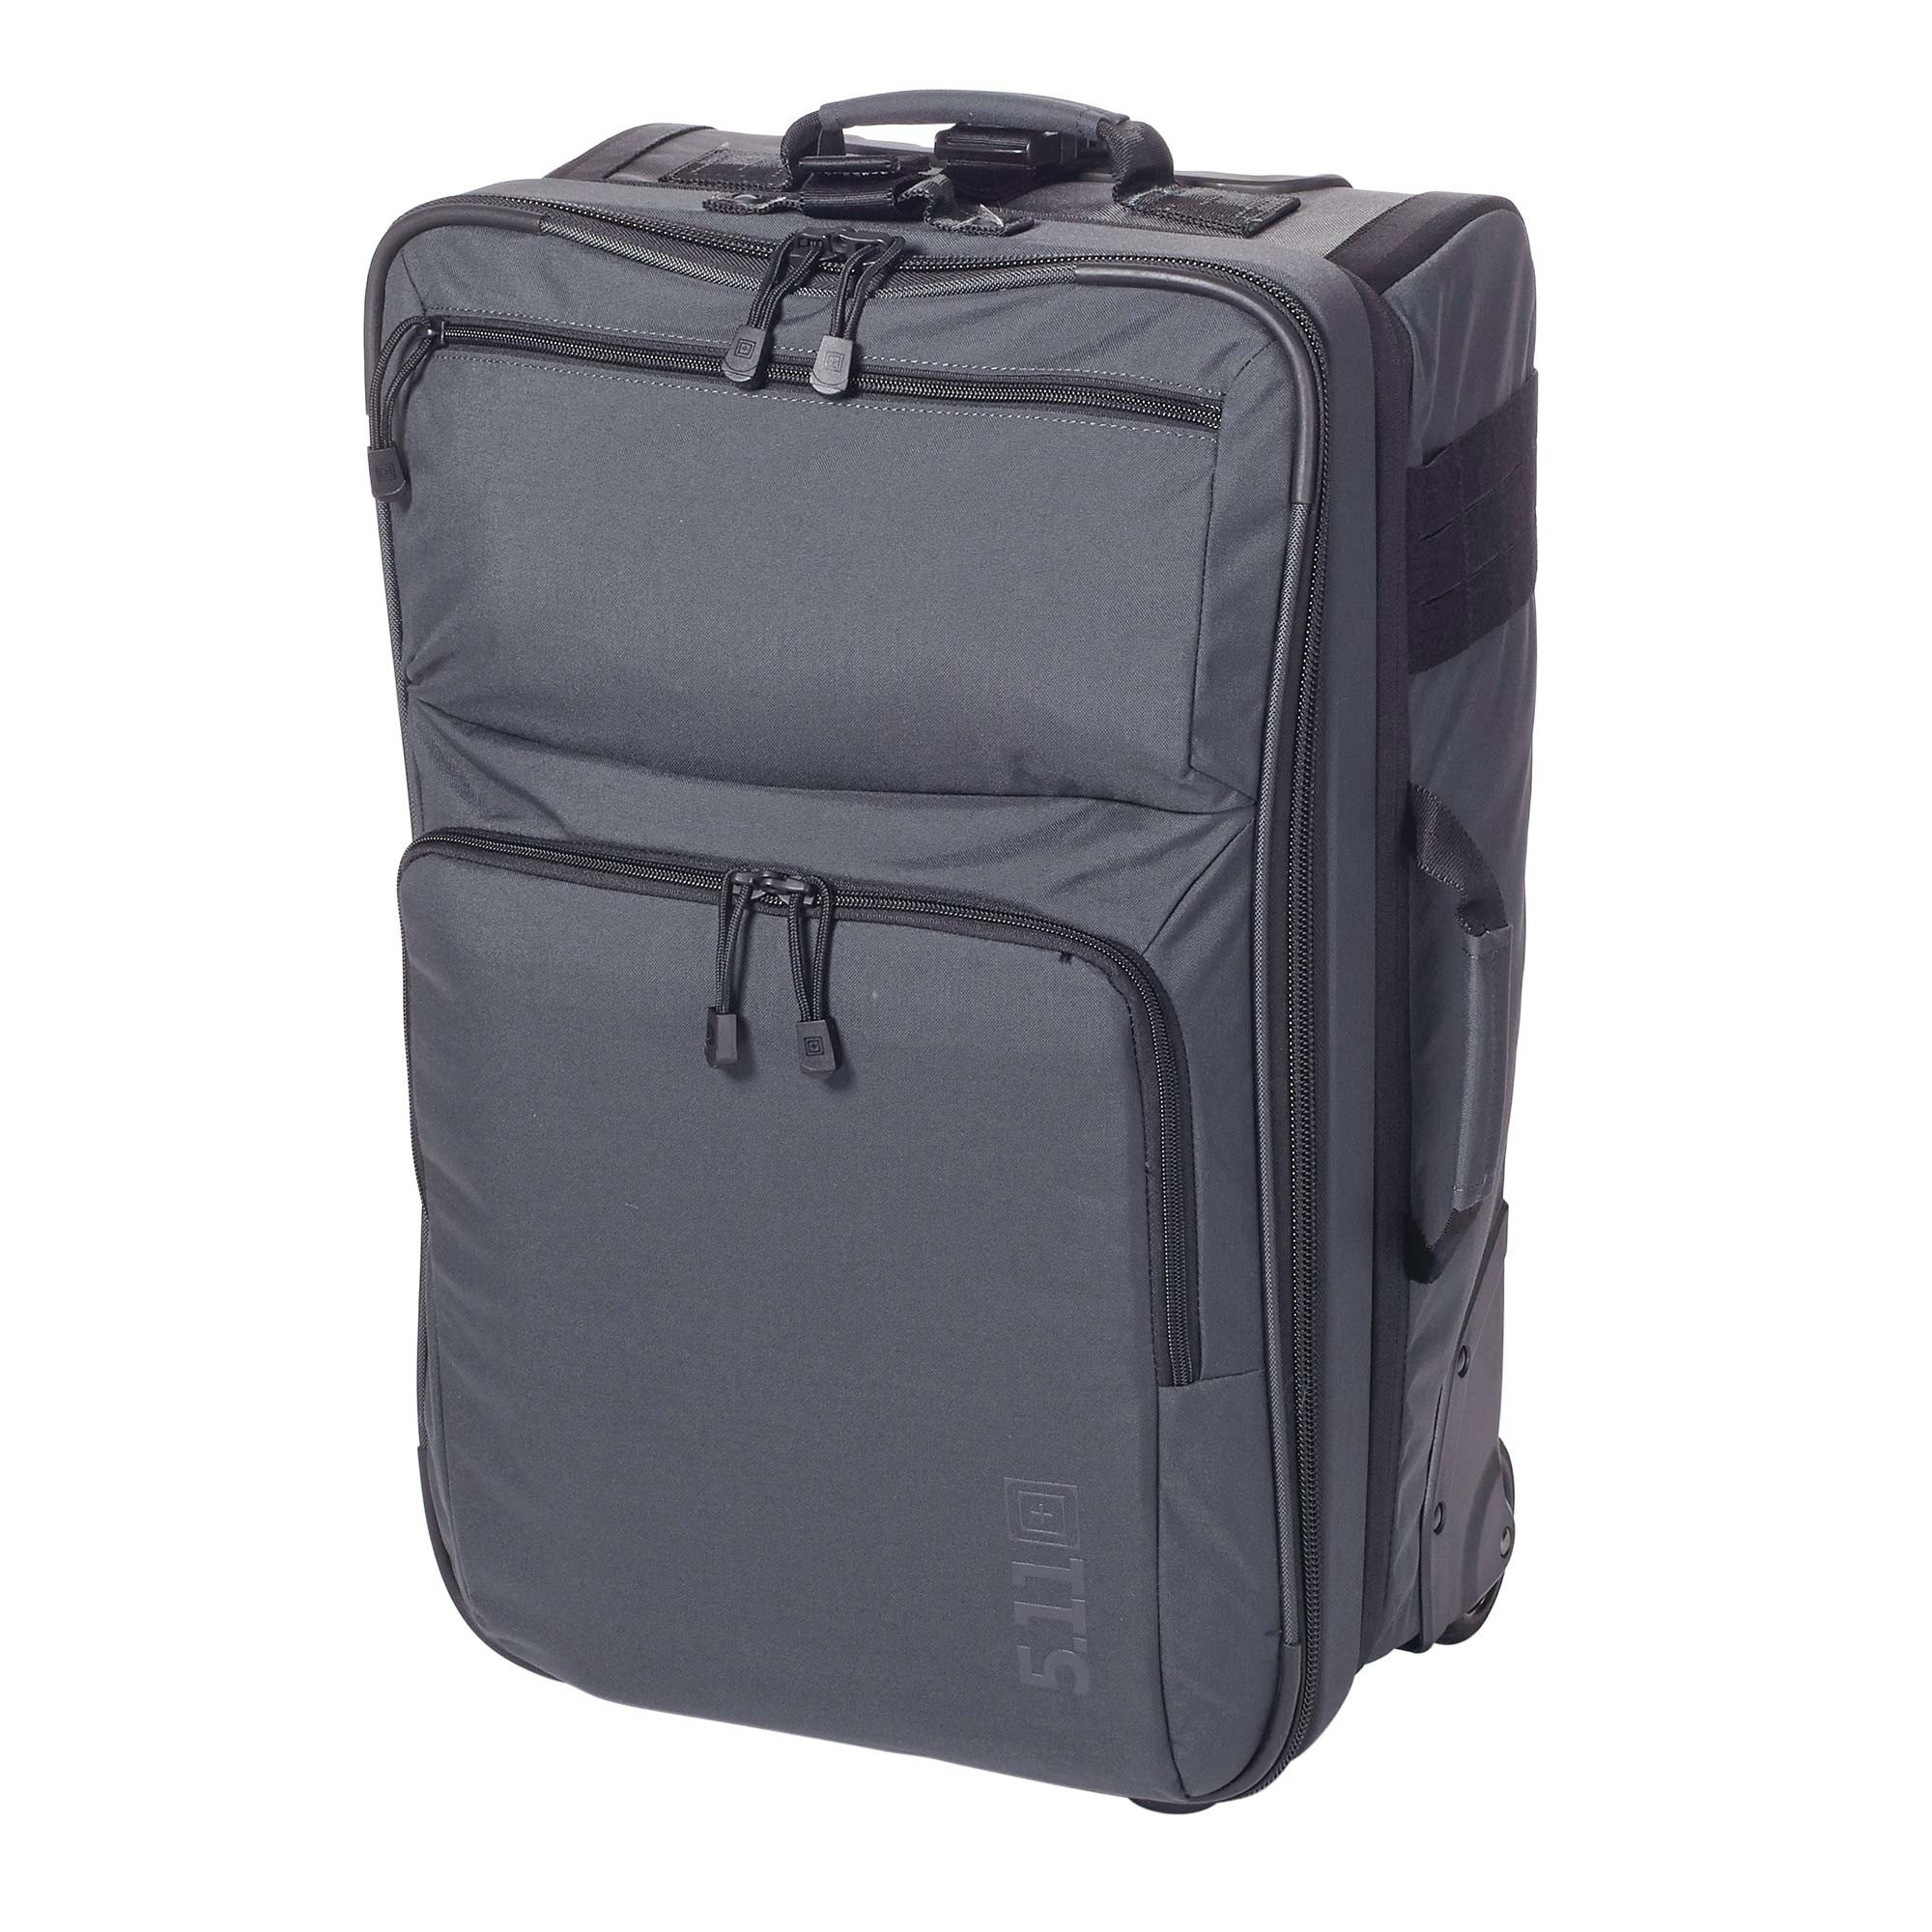 5.11 DC Flat Line Double Tap Carry-On Bag by 5.11 Outdoor